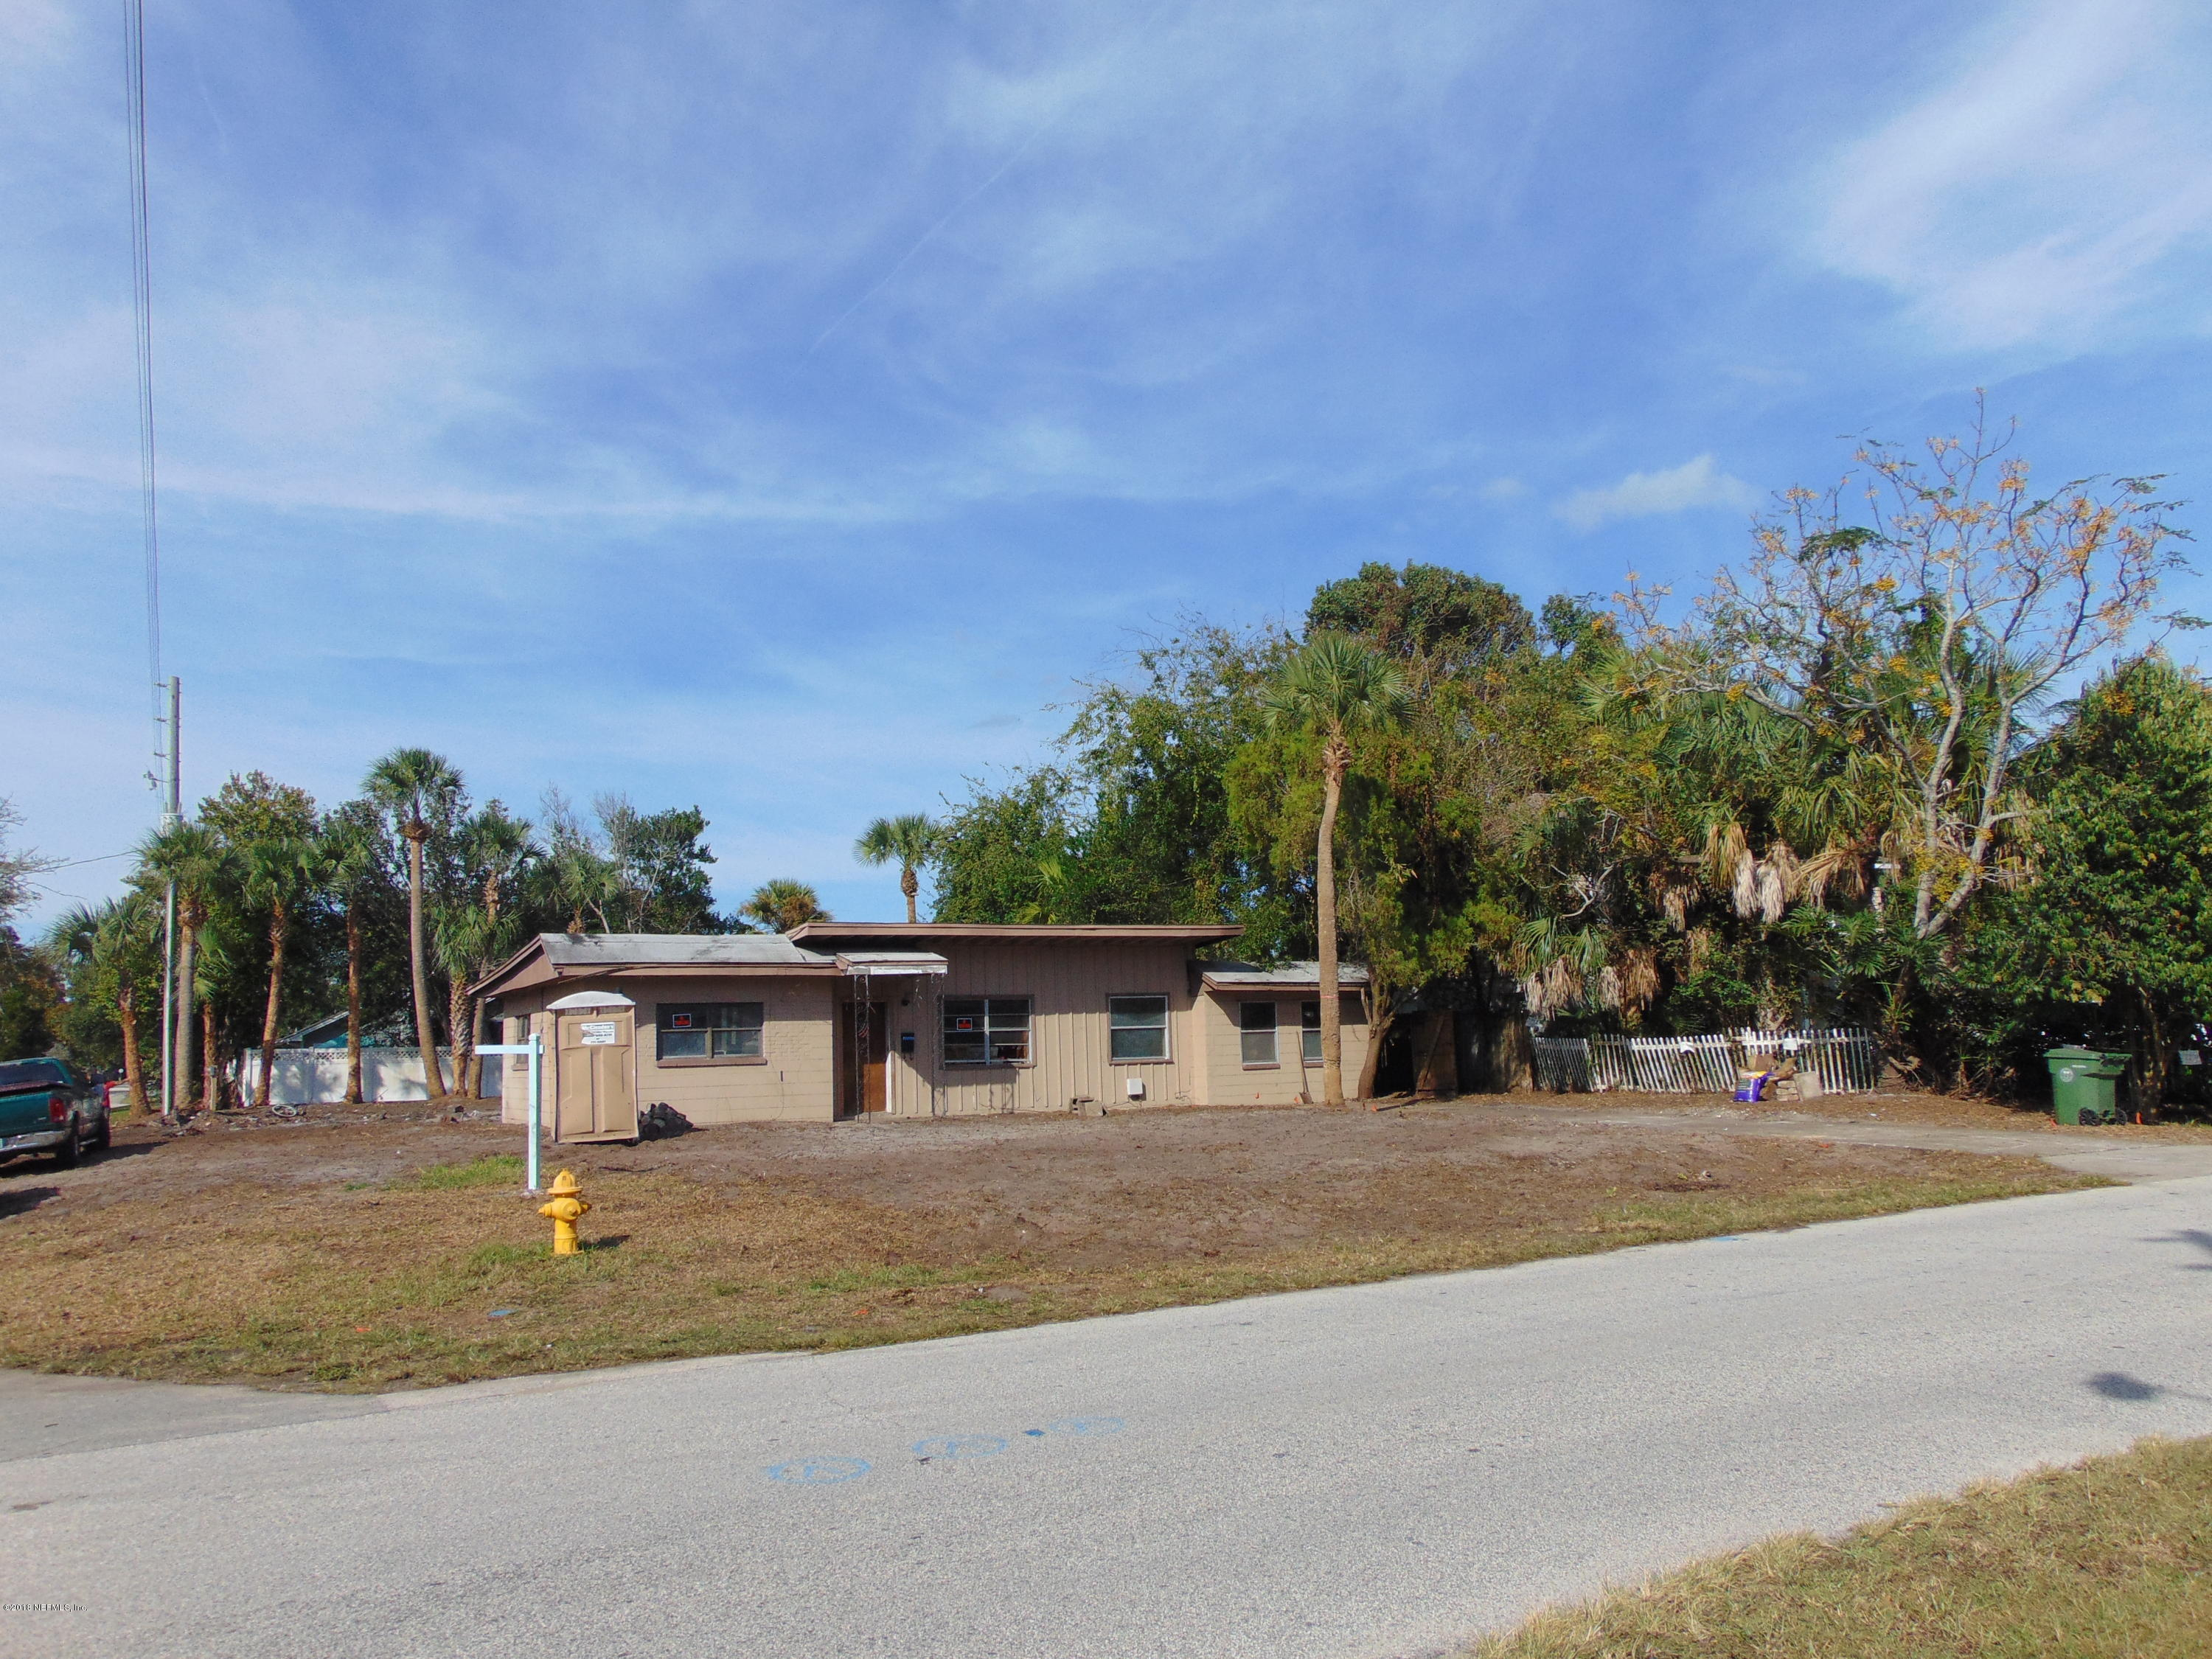 635 4TH, JACKSONVILLE BEACH, FLORIDA 32250, 3 Bedrooms Bedrooms, ,1 BathroomBathrooms,Residential - single family,For sale,4TH,965391